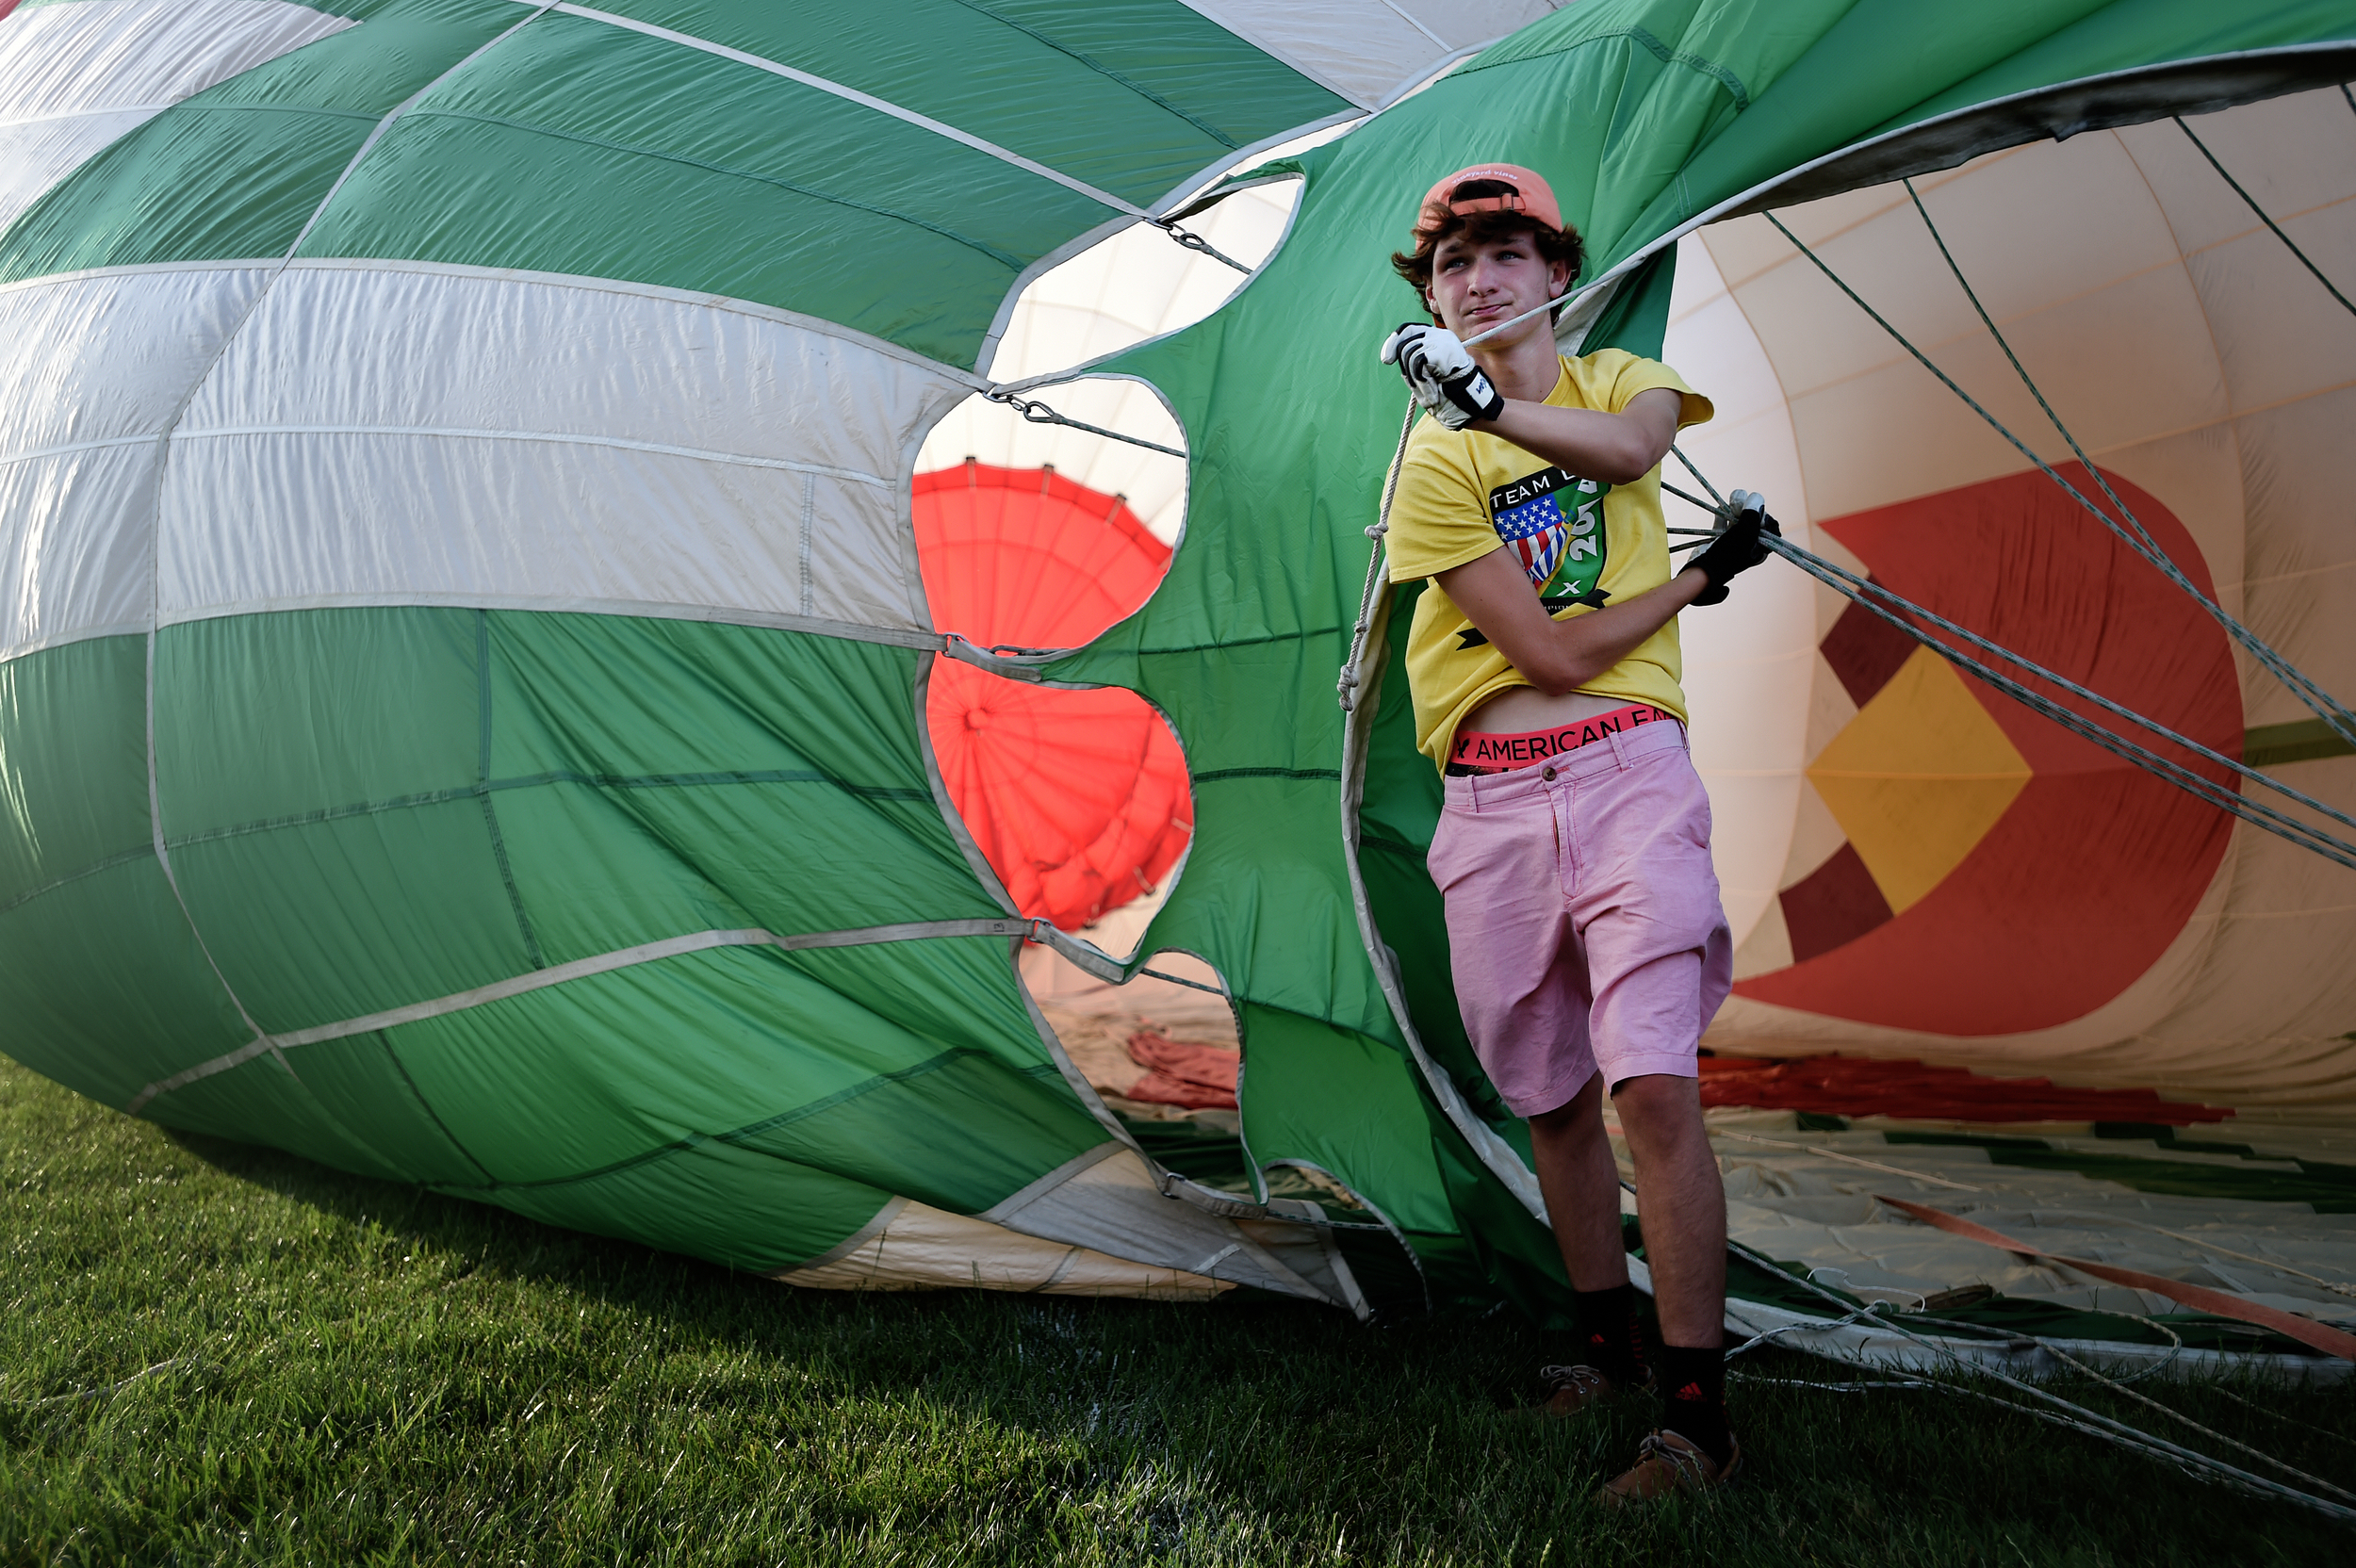 Christian Stison, 14, of Louisville, KY, helps inflate a hot air balloon during the Great Eastern Balloon Camp at Kutztown University in Kutztown, PA, on July 11, 2016. (Reading Eagle: Sarah Stier)